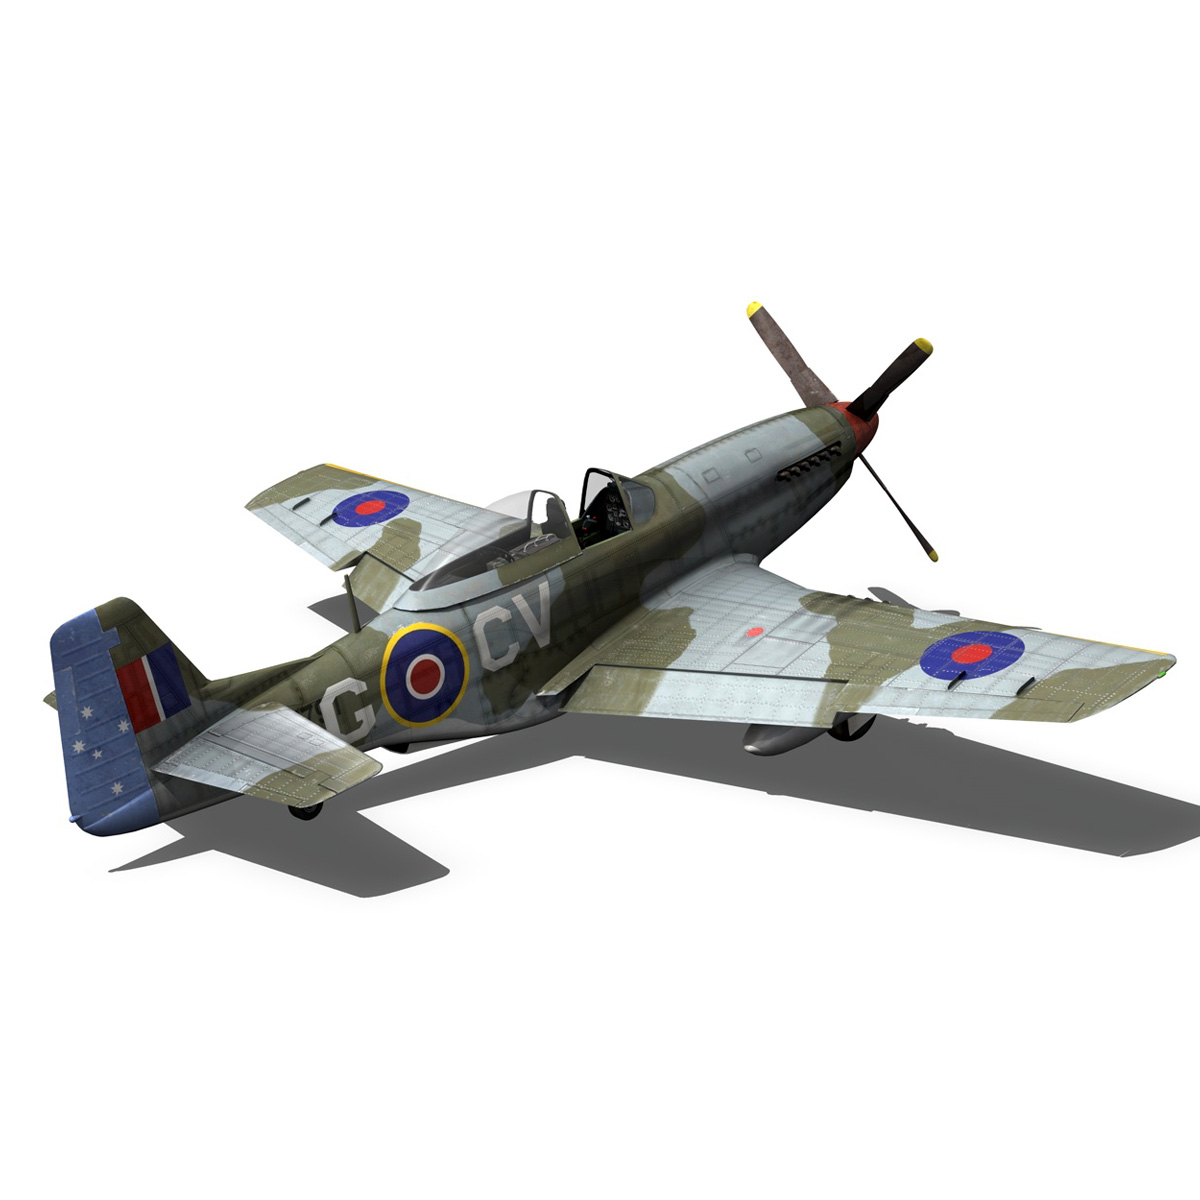 north american p-51d – cv-g 3d model 3ds fbx c4d lwo obj 188570